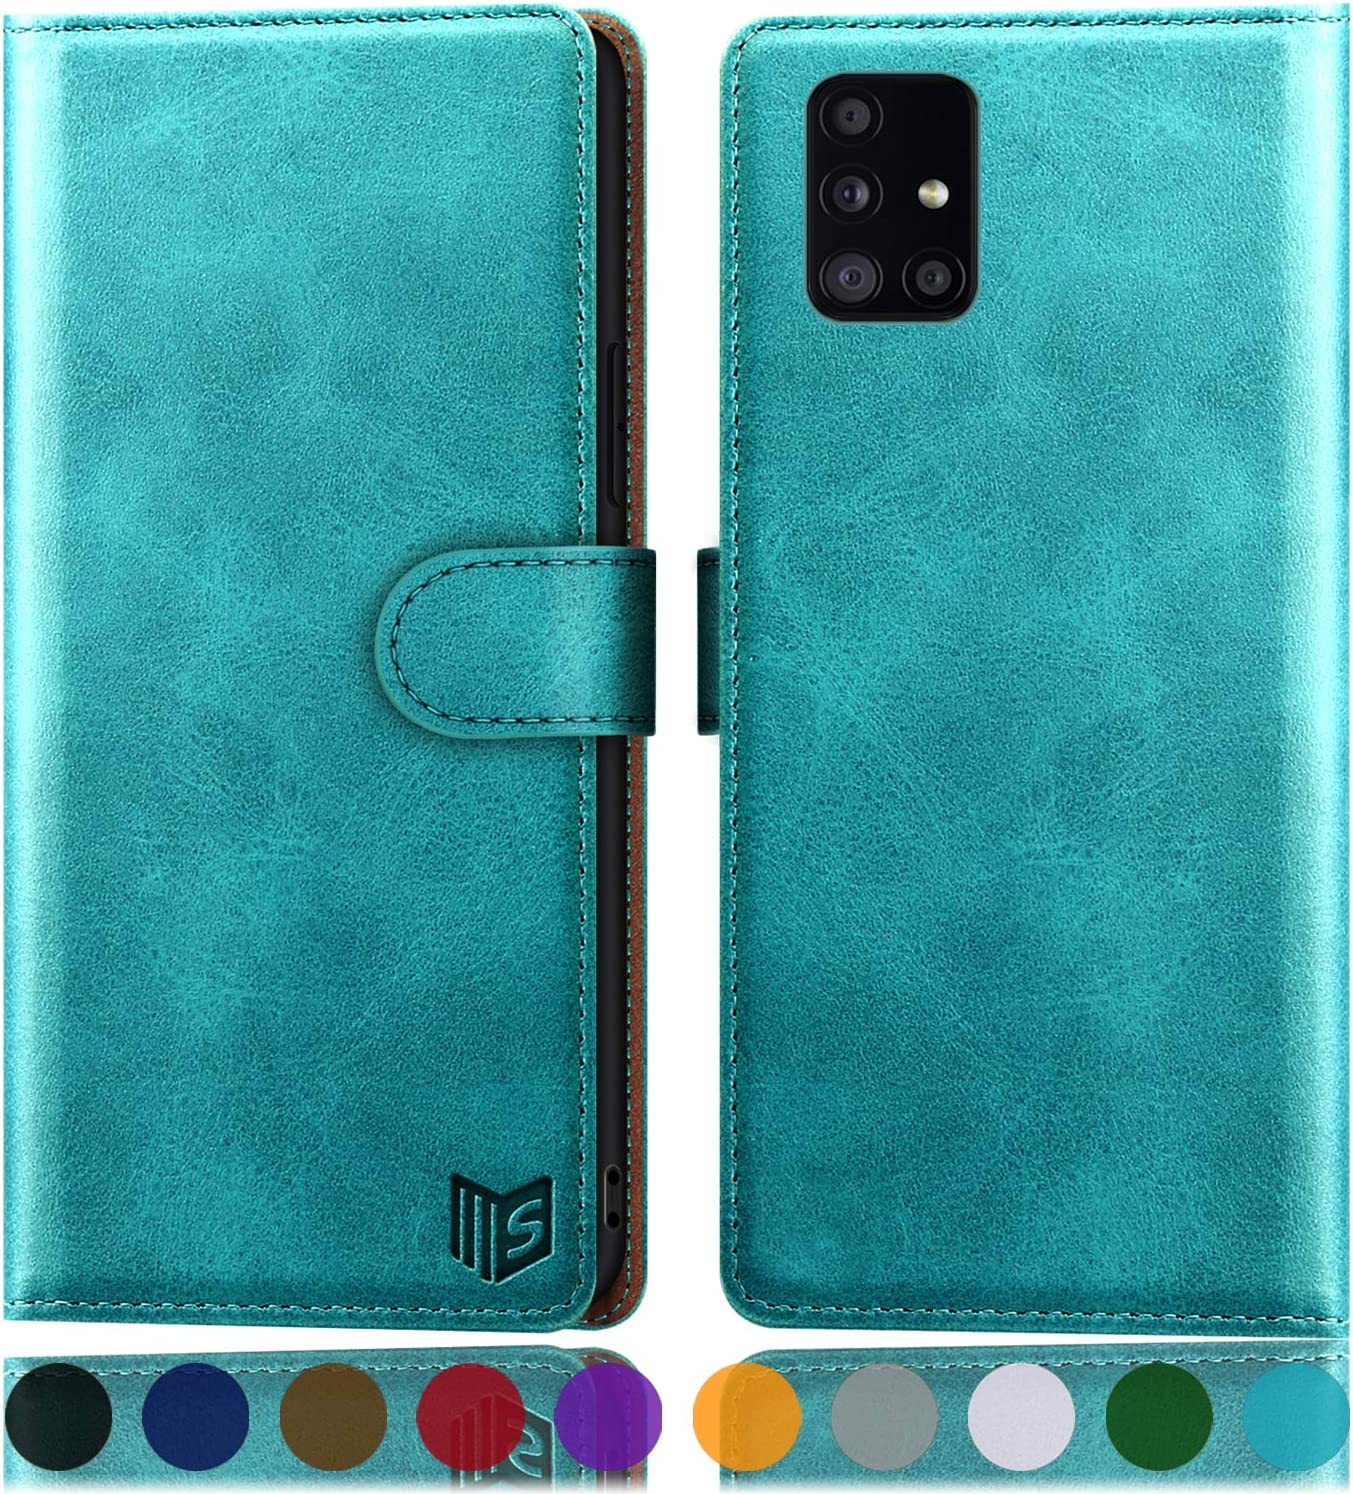 SUANPOT for Samsung Galaxy A51 4G (Not Fit A51 5G) Leather Wallet case with RFID Blocking Credit Card Holder, Flip Folio Book PU Cell Phone Cover Shockproof Wallet Pocket for Men Women Blue Green